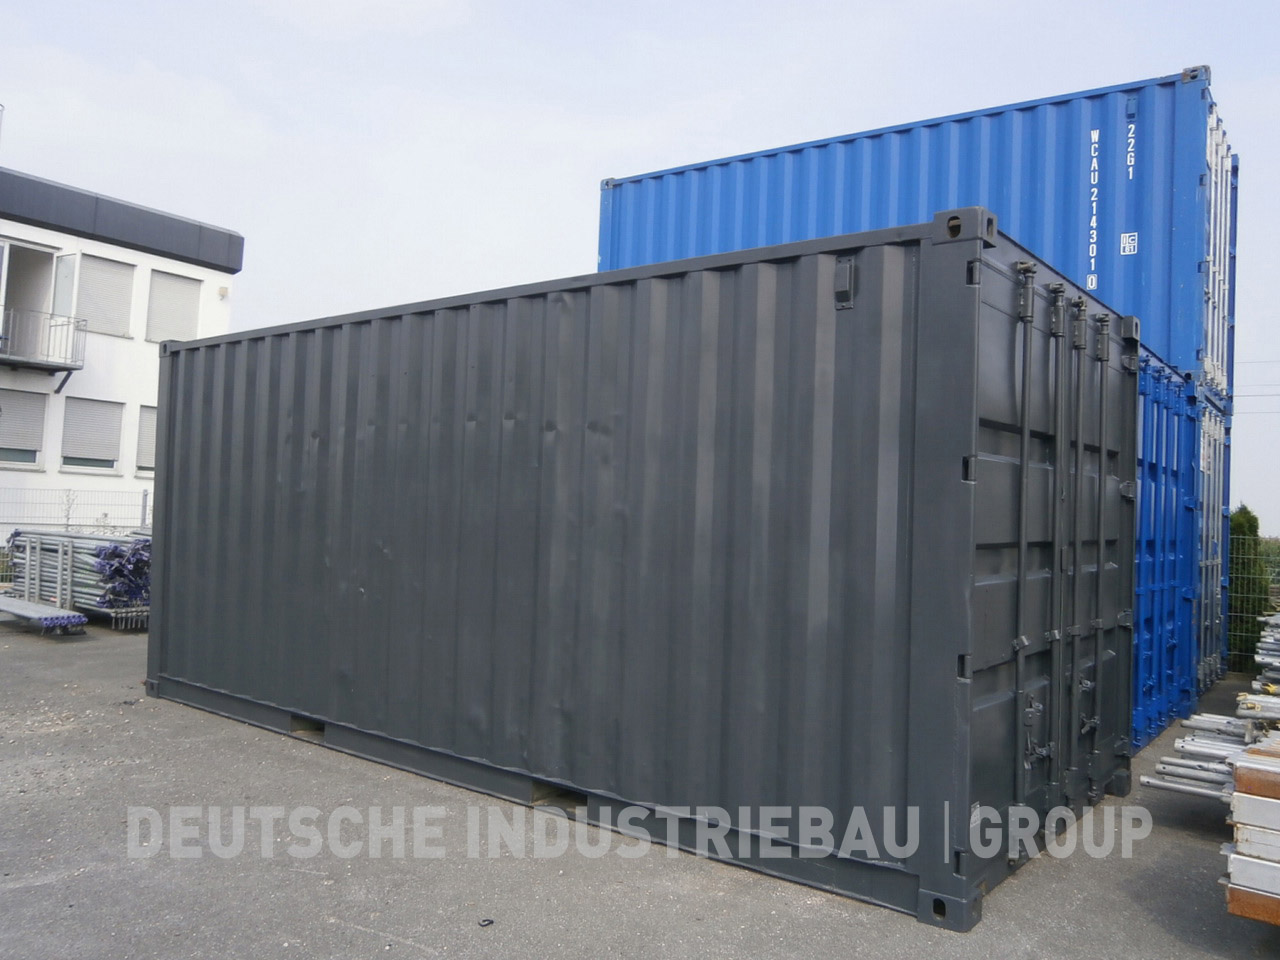 deutsche industriebau group seecontainer 20 fu ab lager geseke one way neu deutsche. Black Bedroom Furniture Sets. Home Design Ideas